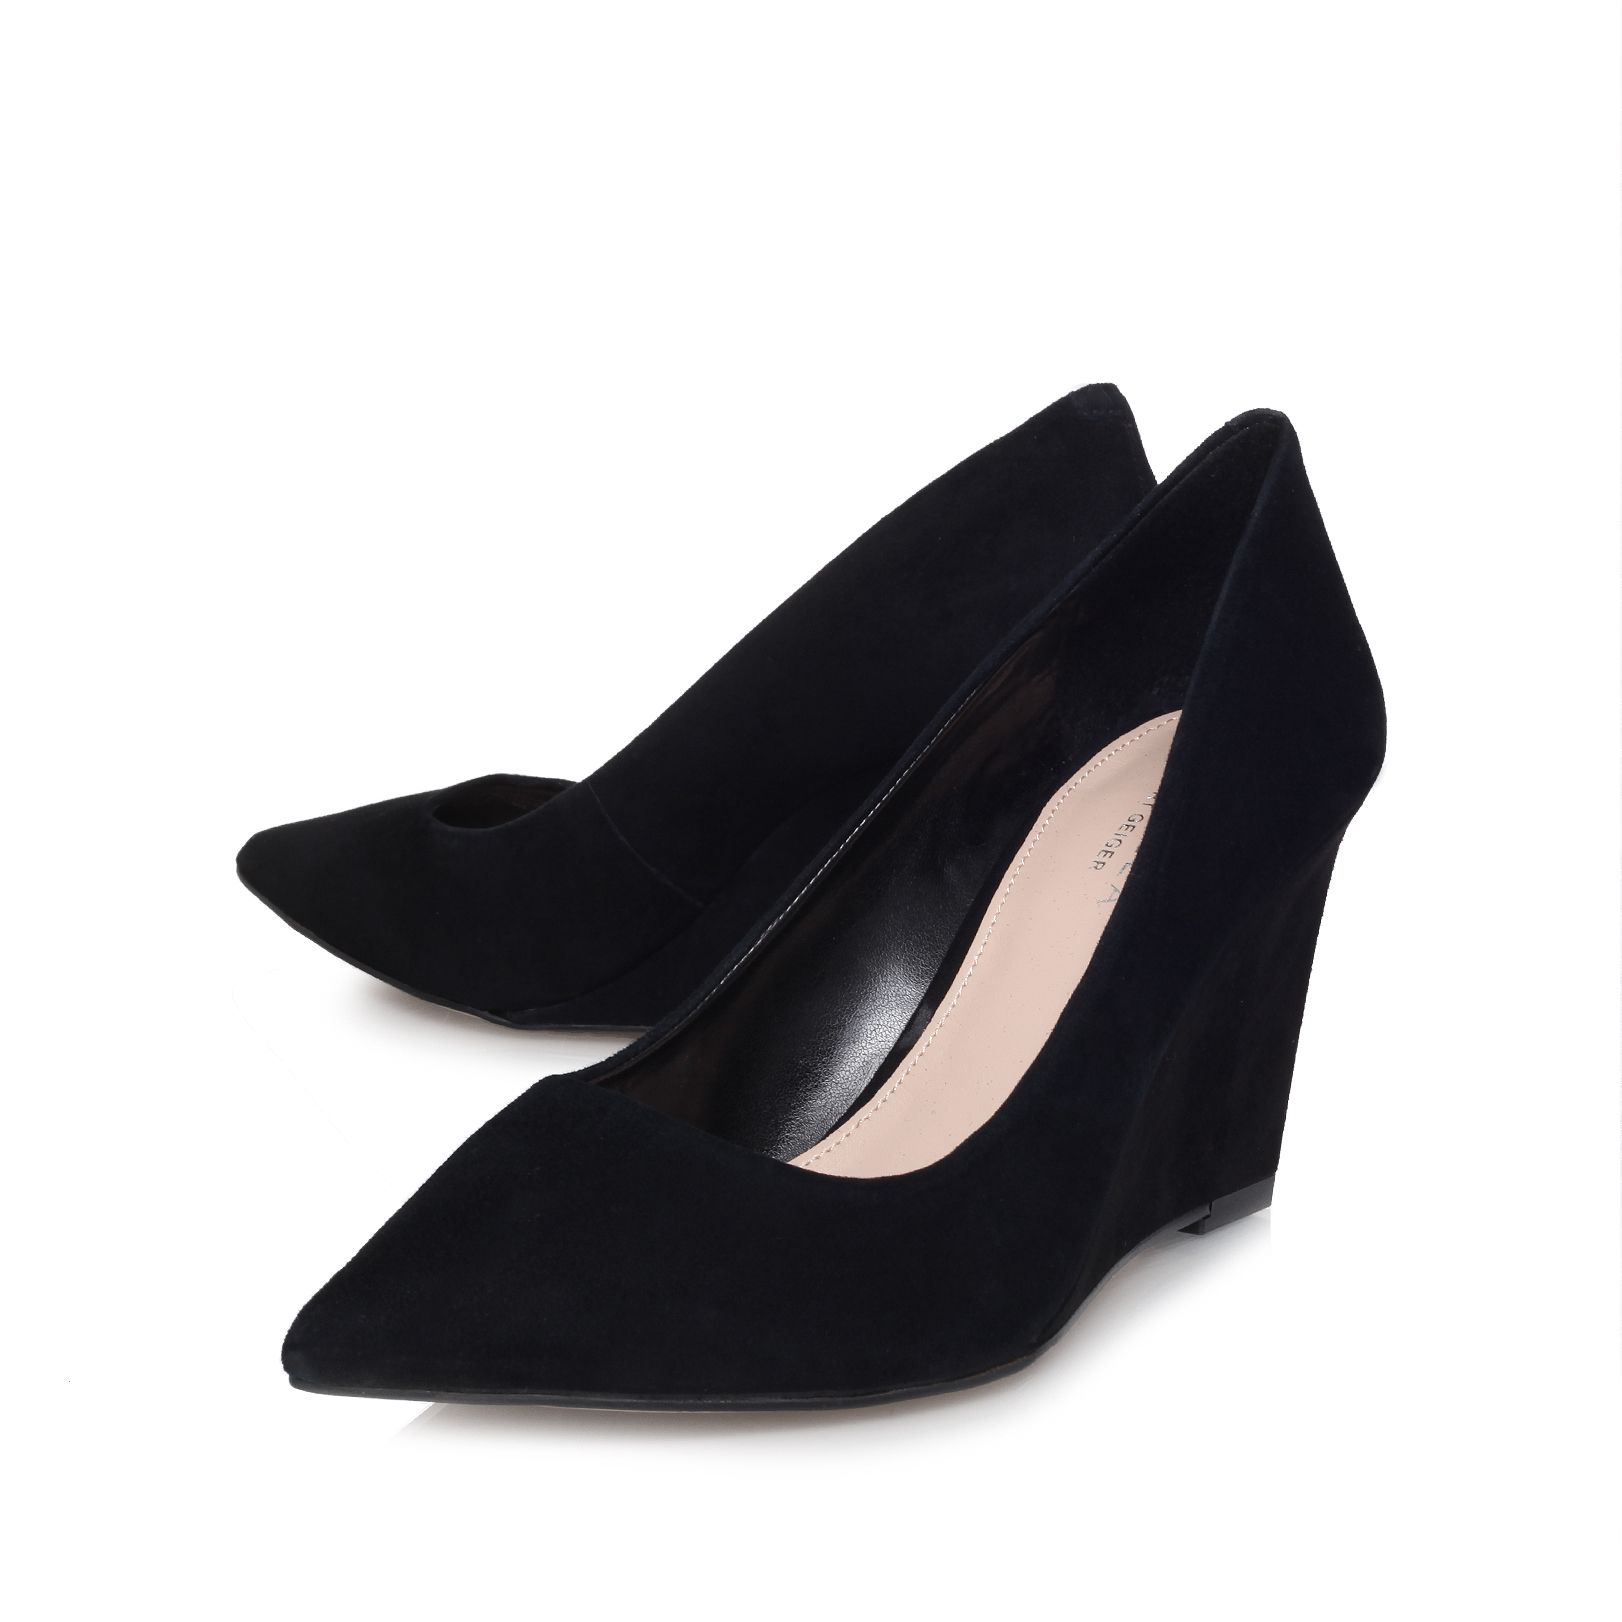 High heel wedge court shoes